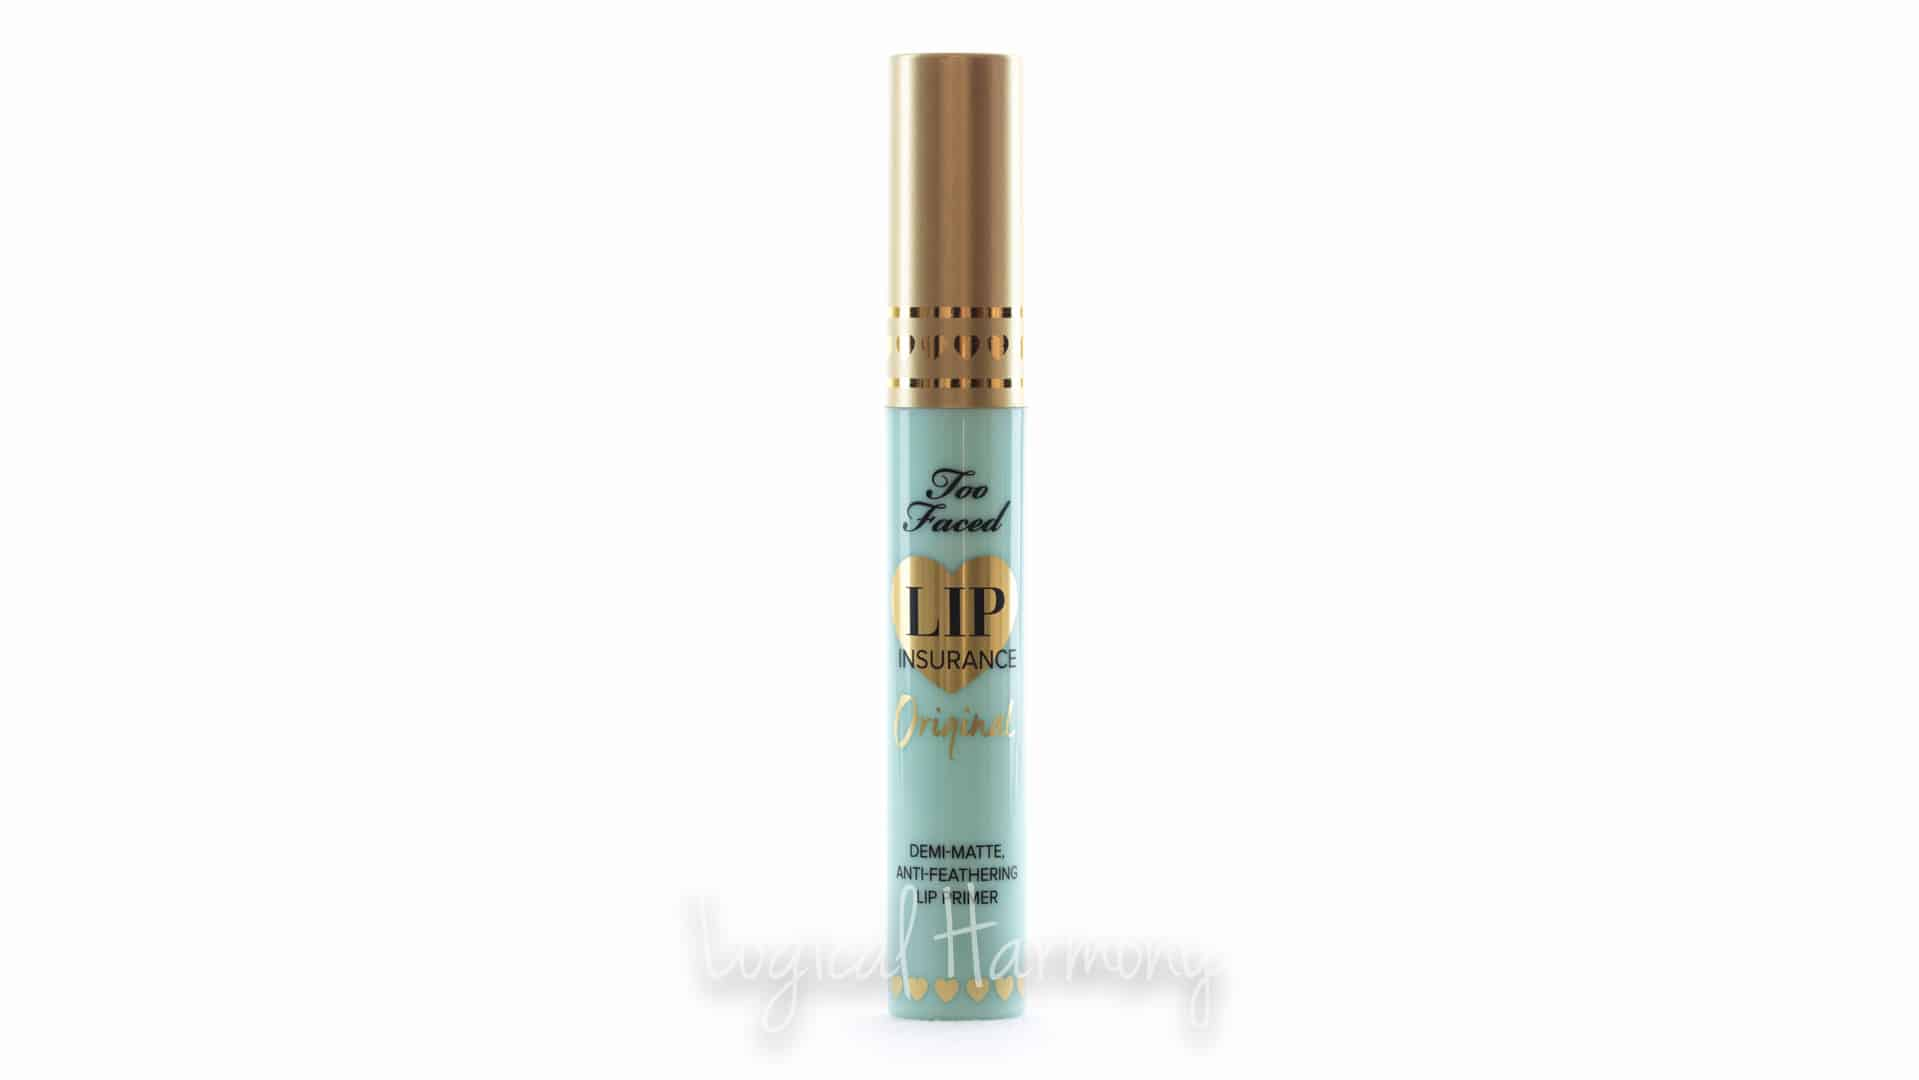 Too Faced Lip Insurance Lip Primer Review